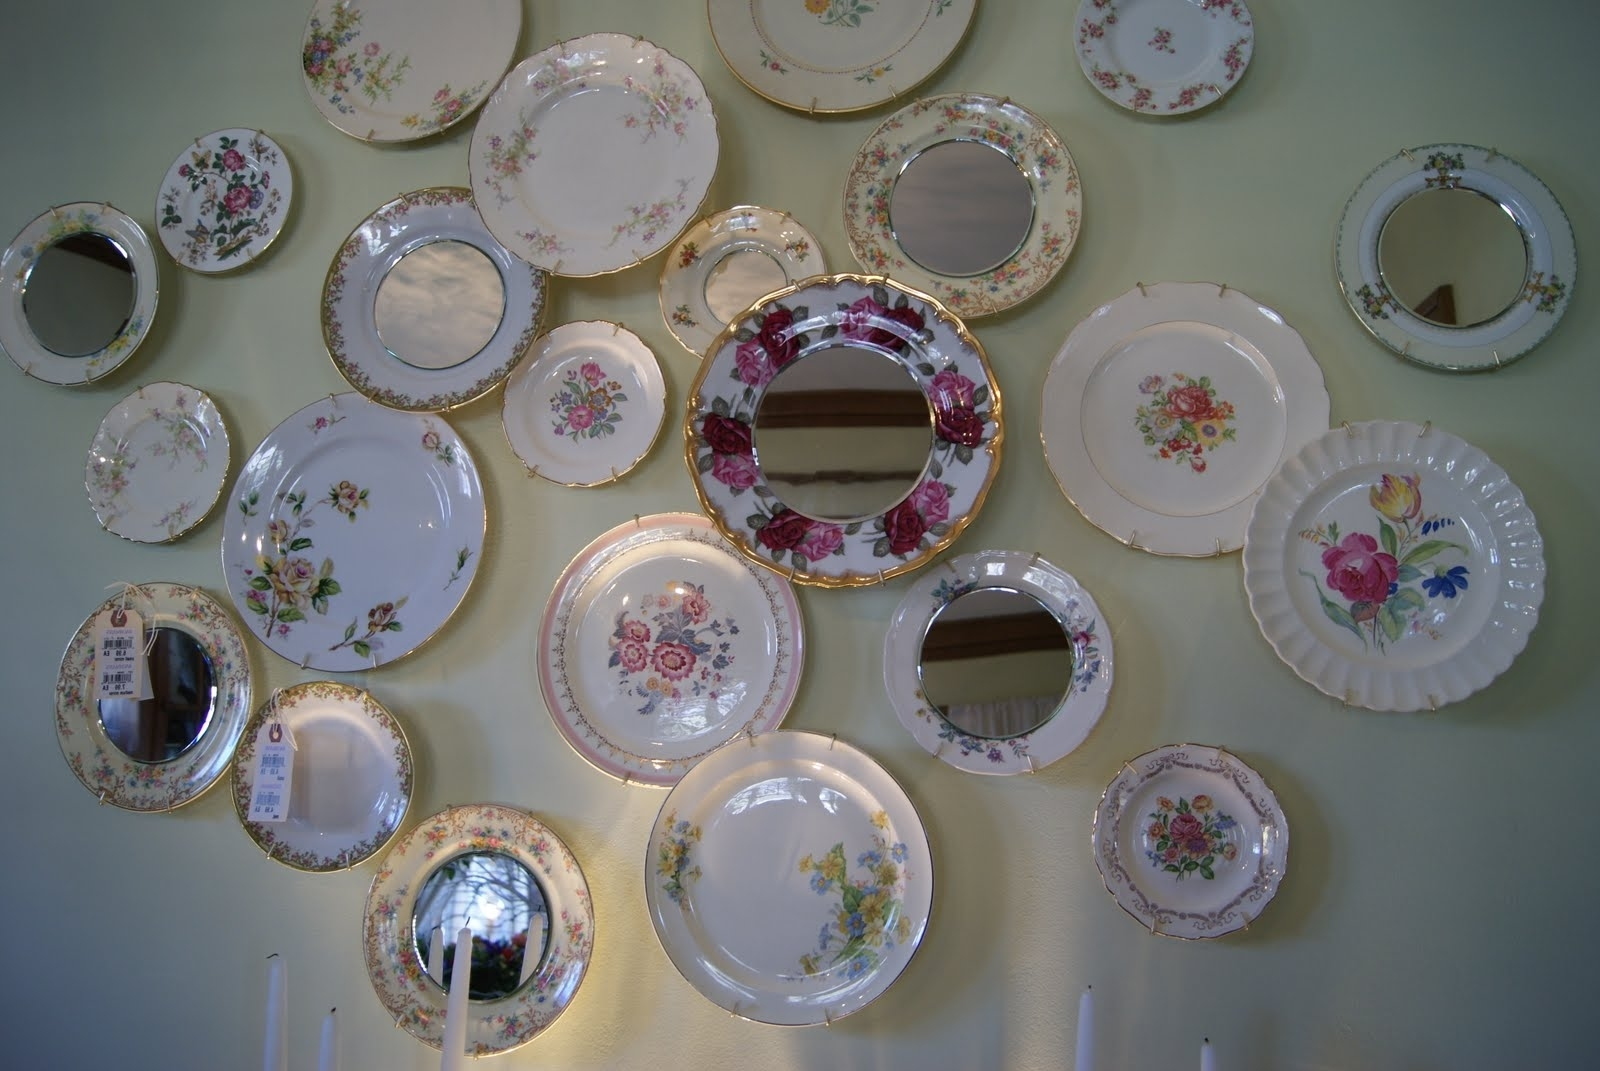 Dining Room Decorative Plates Mirrors Used Wall Collage – Dma With Regard To Trendy Decorative Plates For Wall Art (View 8 of 15)